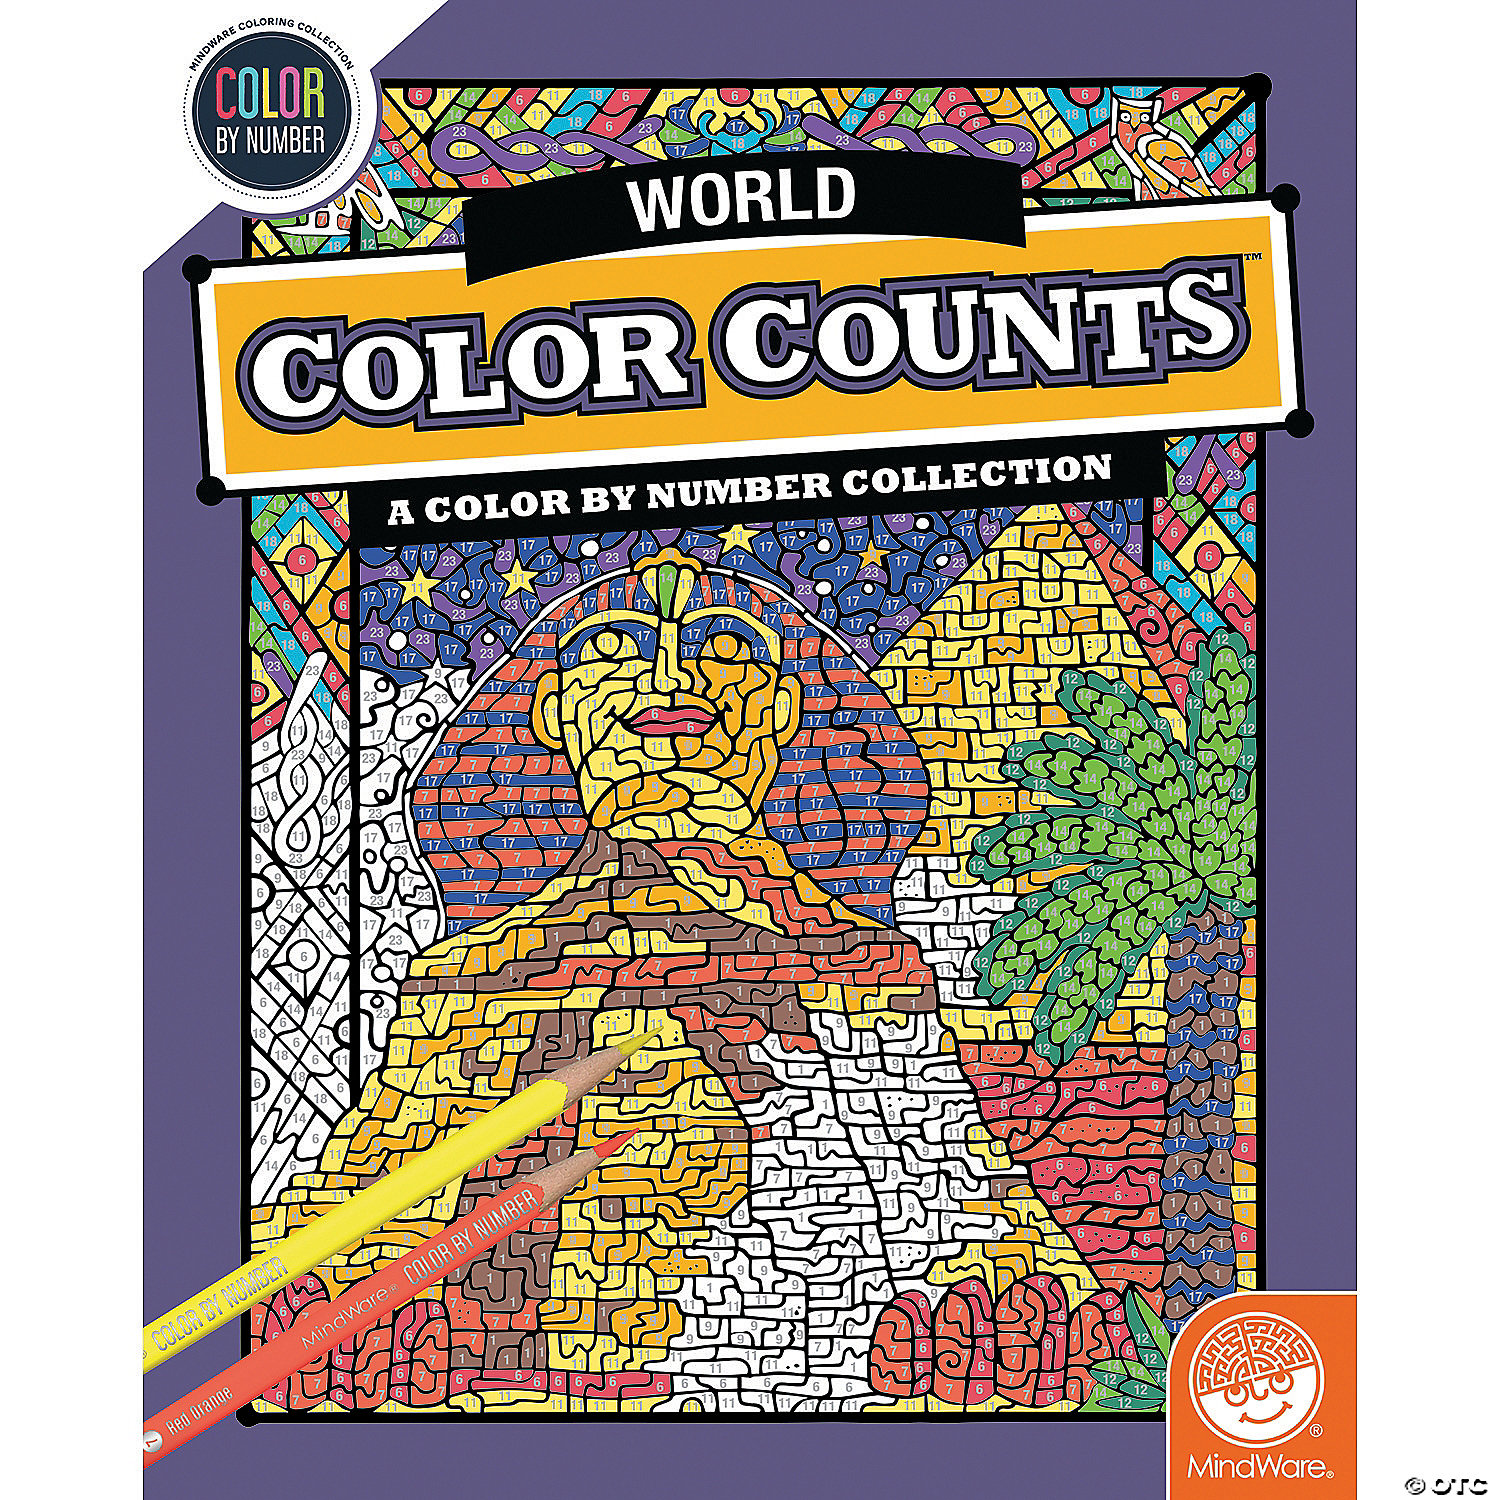 Coloring Books Activity Books for Kids Teens